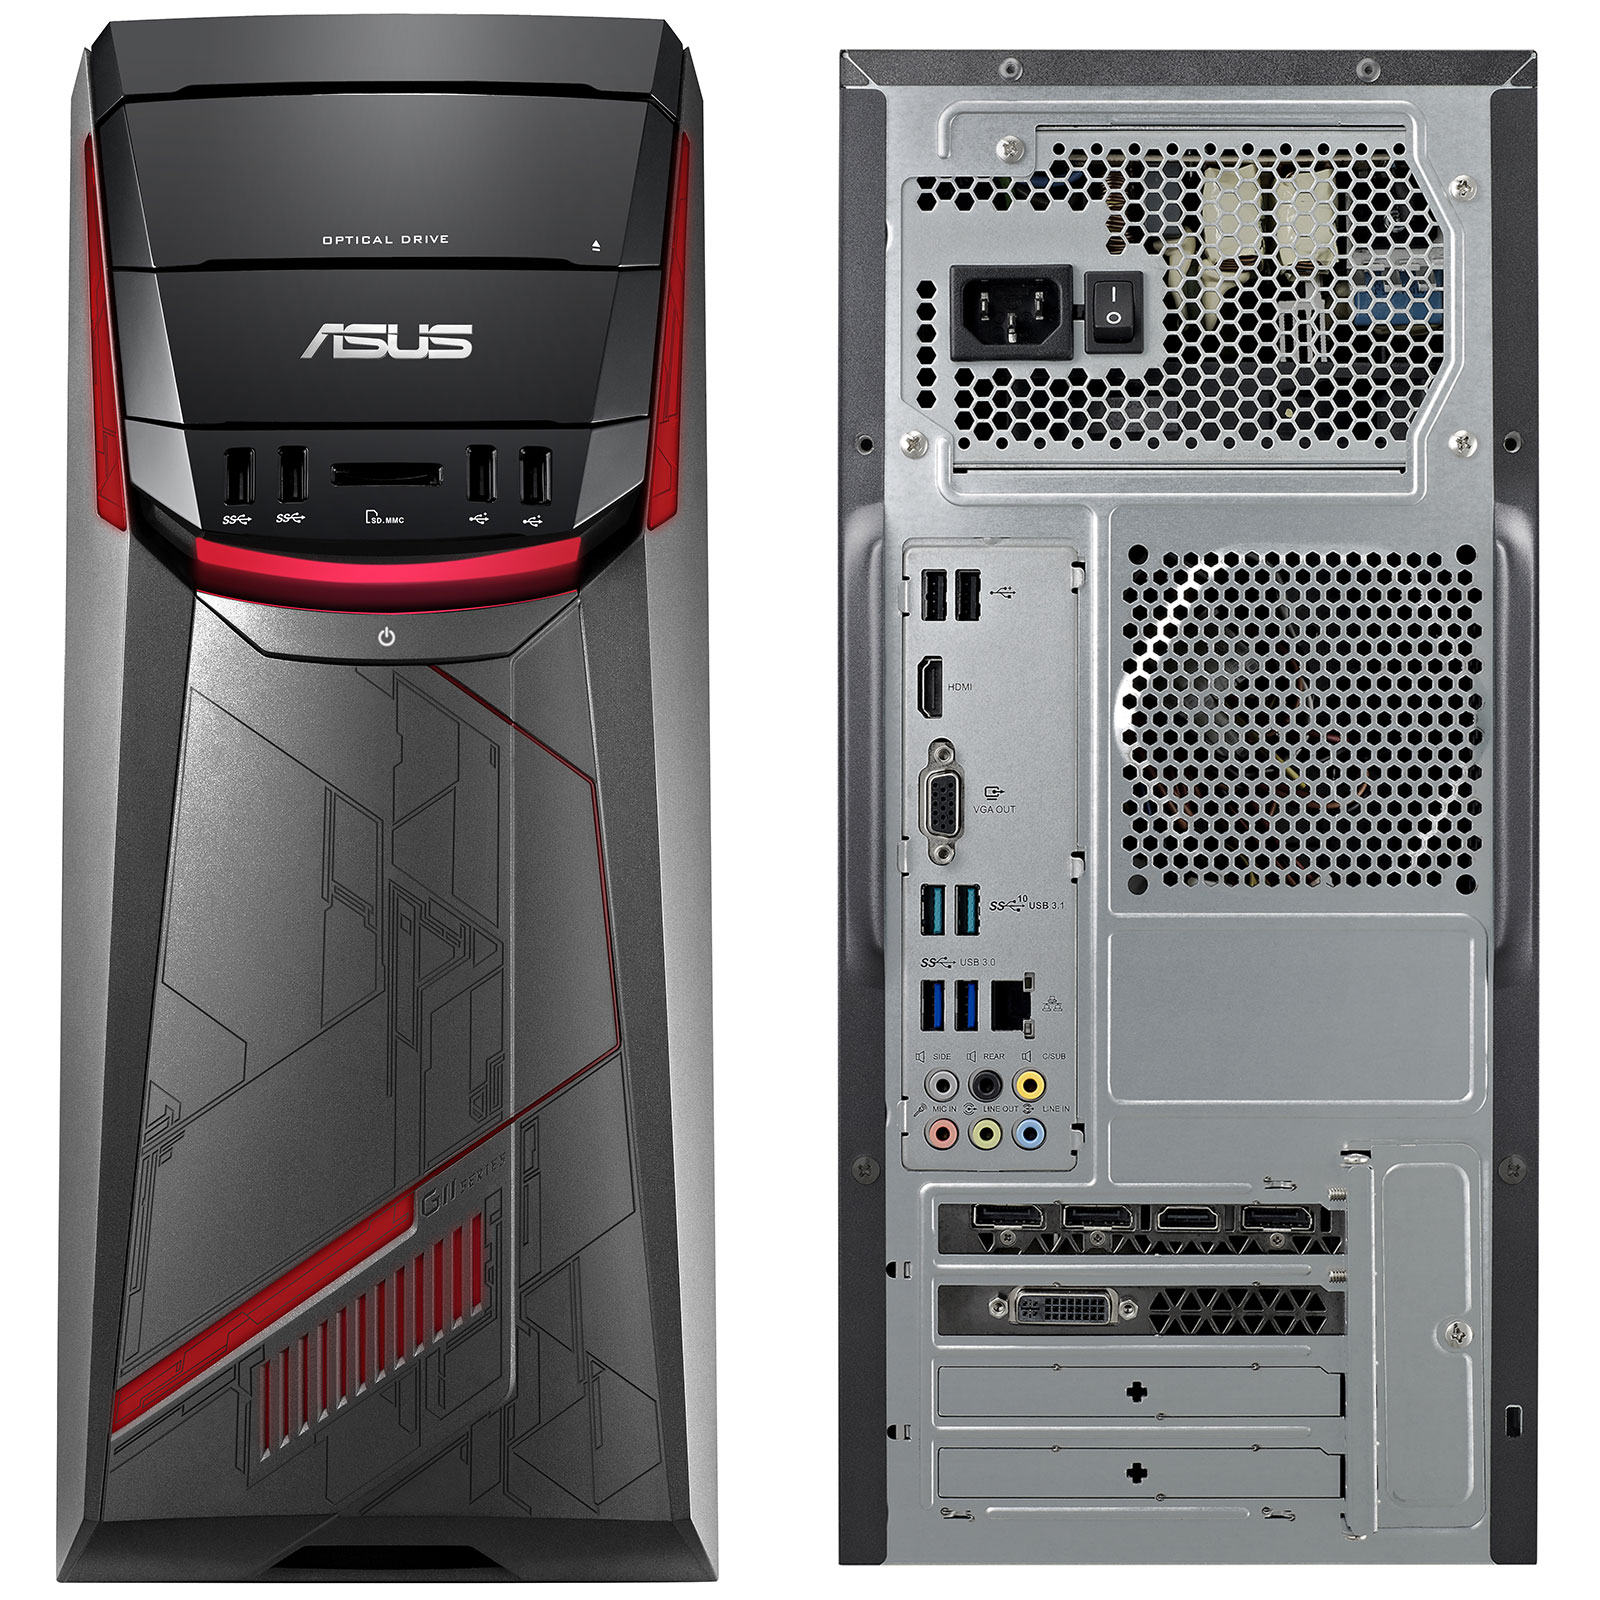 asus g11cd fr059t pc de bureau asus sur ldlc. Black Bedroom Furniture Sets. Home Design Ideas